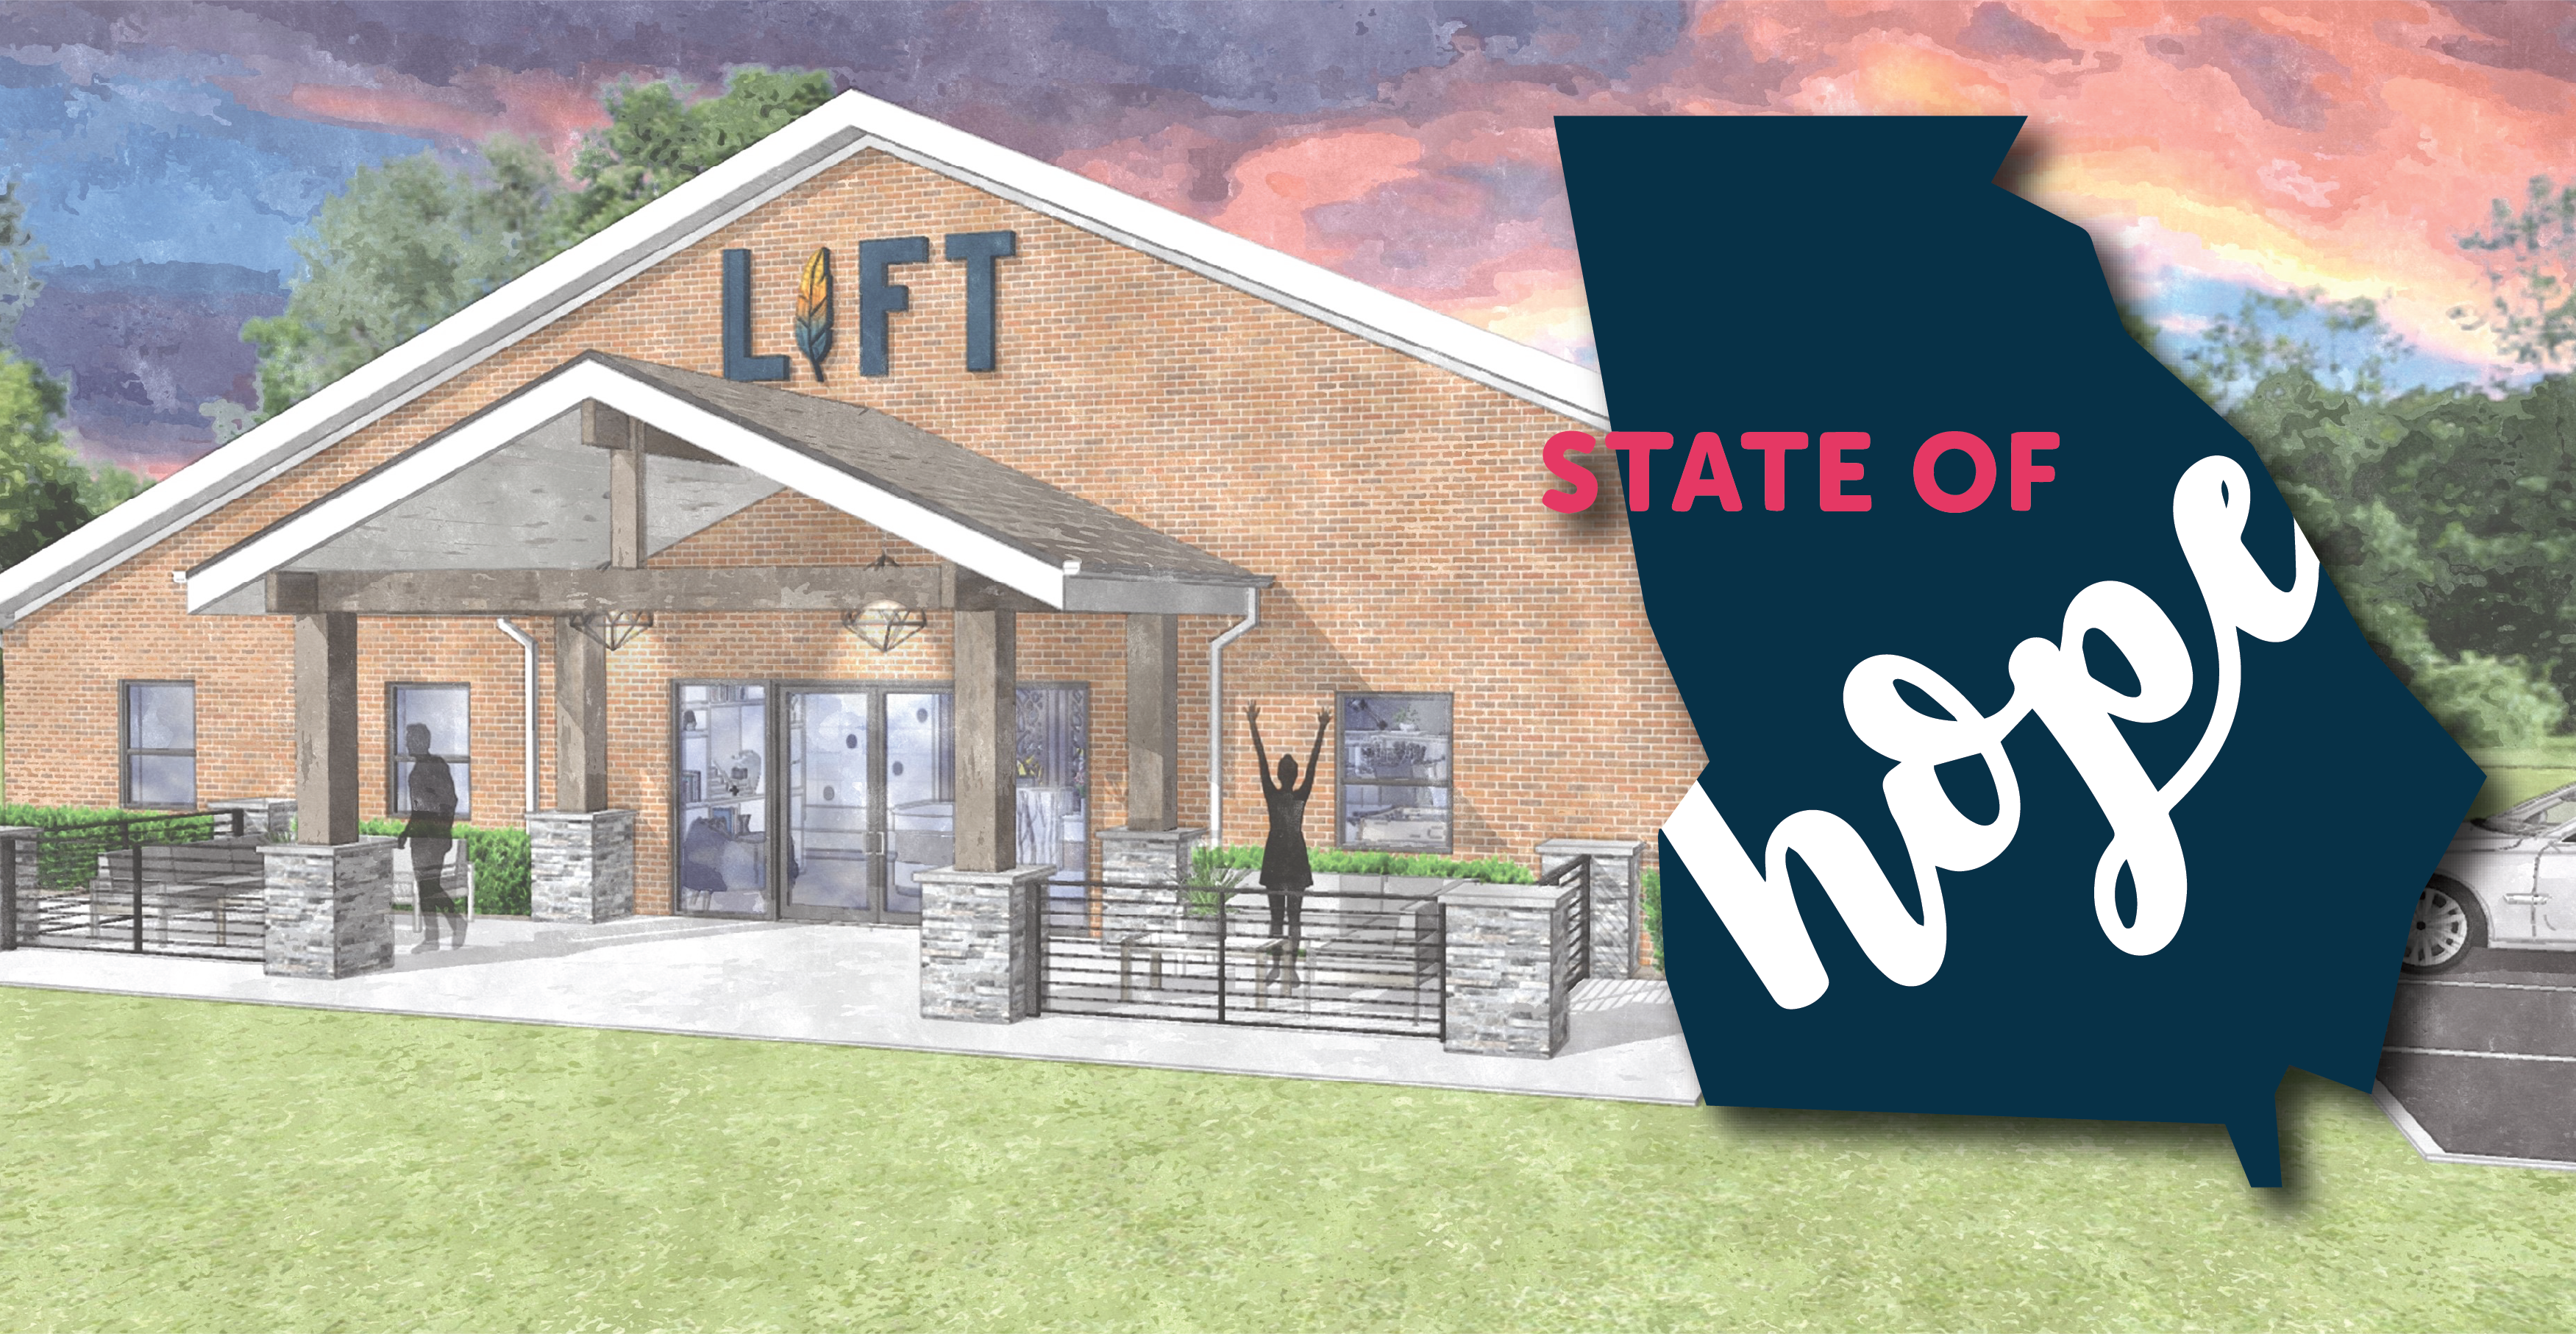 LIFT Youth Center Inc Awarded Funding to Become a State of Hope Site